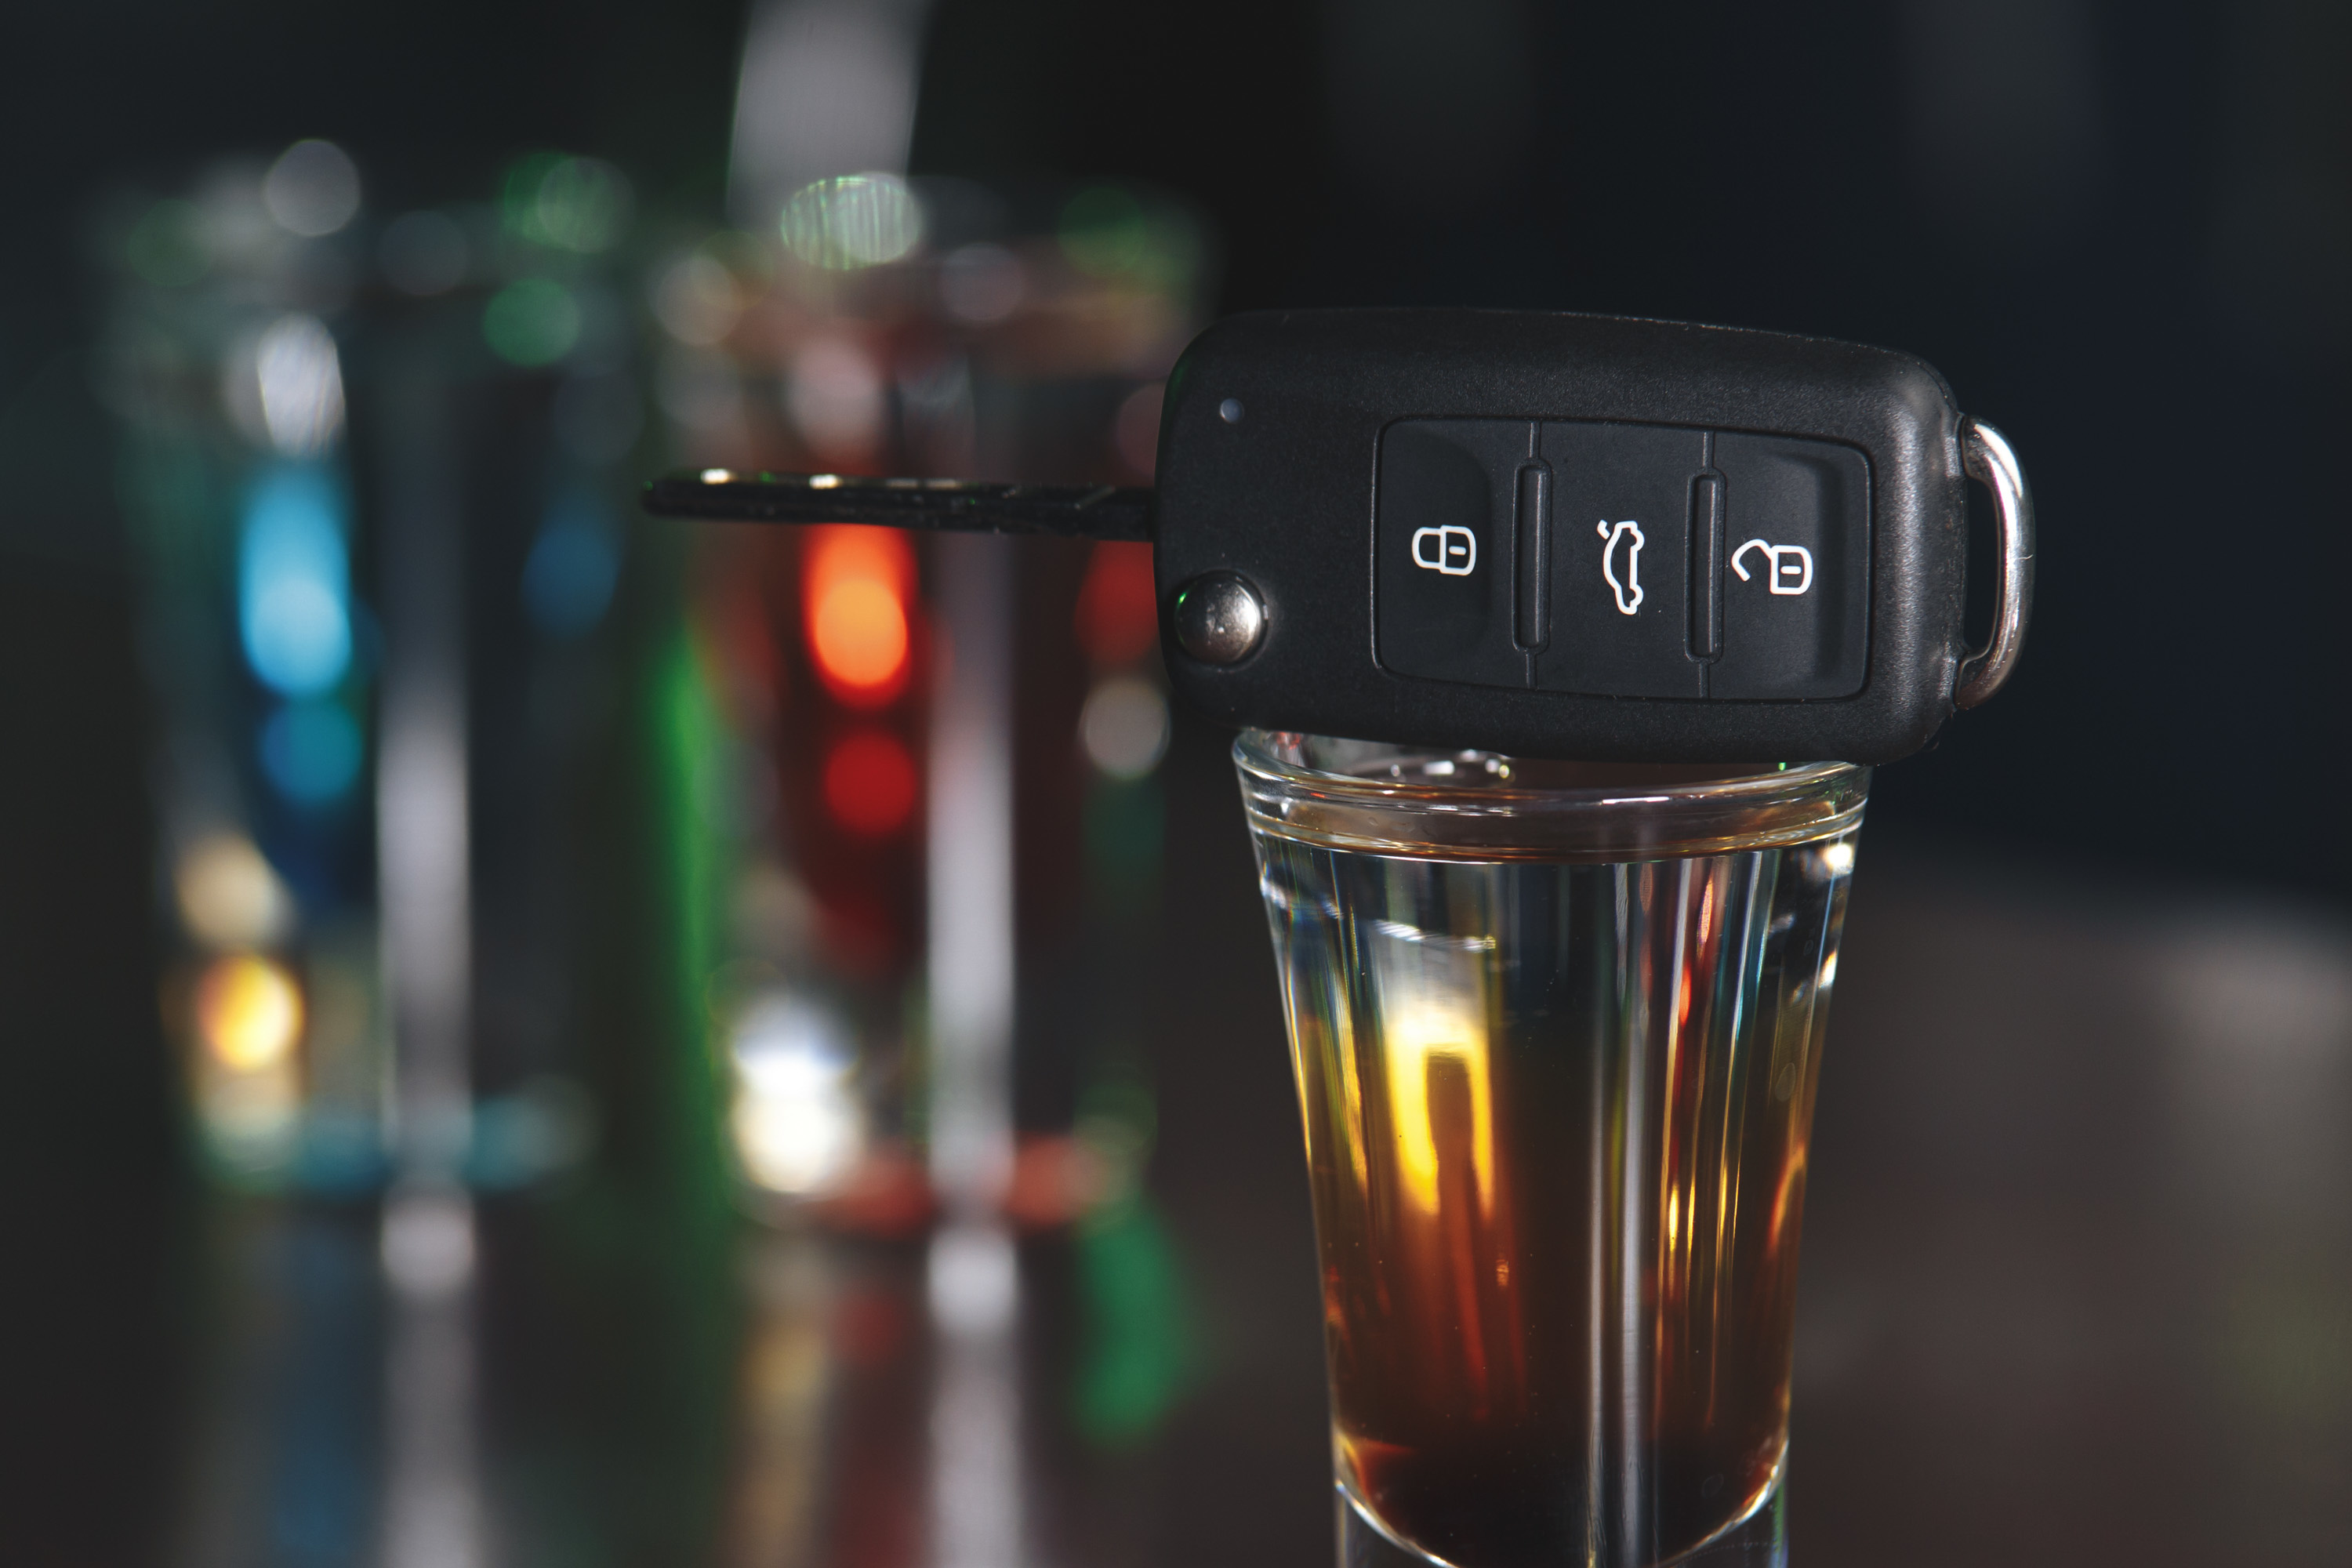 Stock image of key fob and alcohol on table